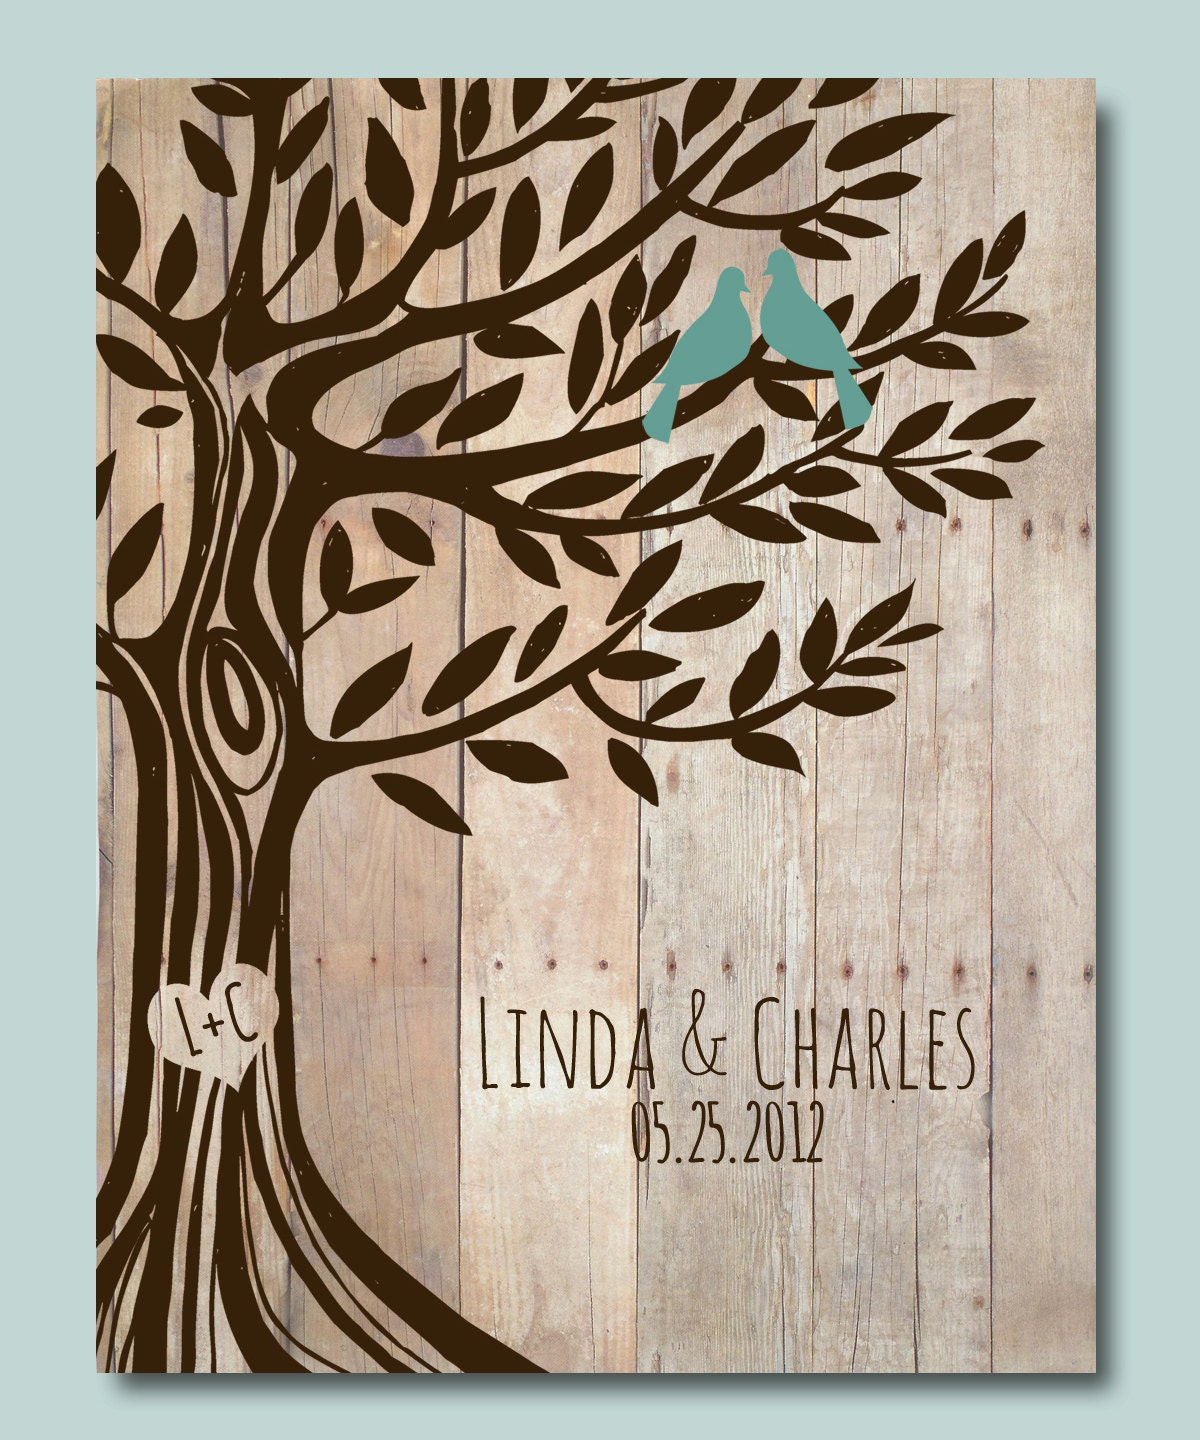 Ideas For Wedding Gifts: Personalized Wedding Gift Love Birds Tree Engagement Gift